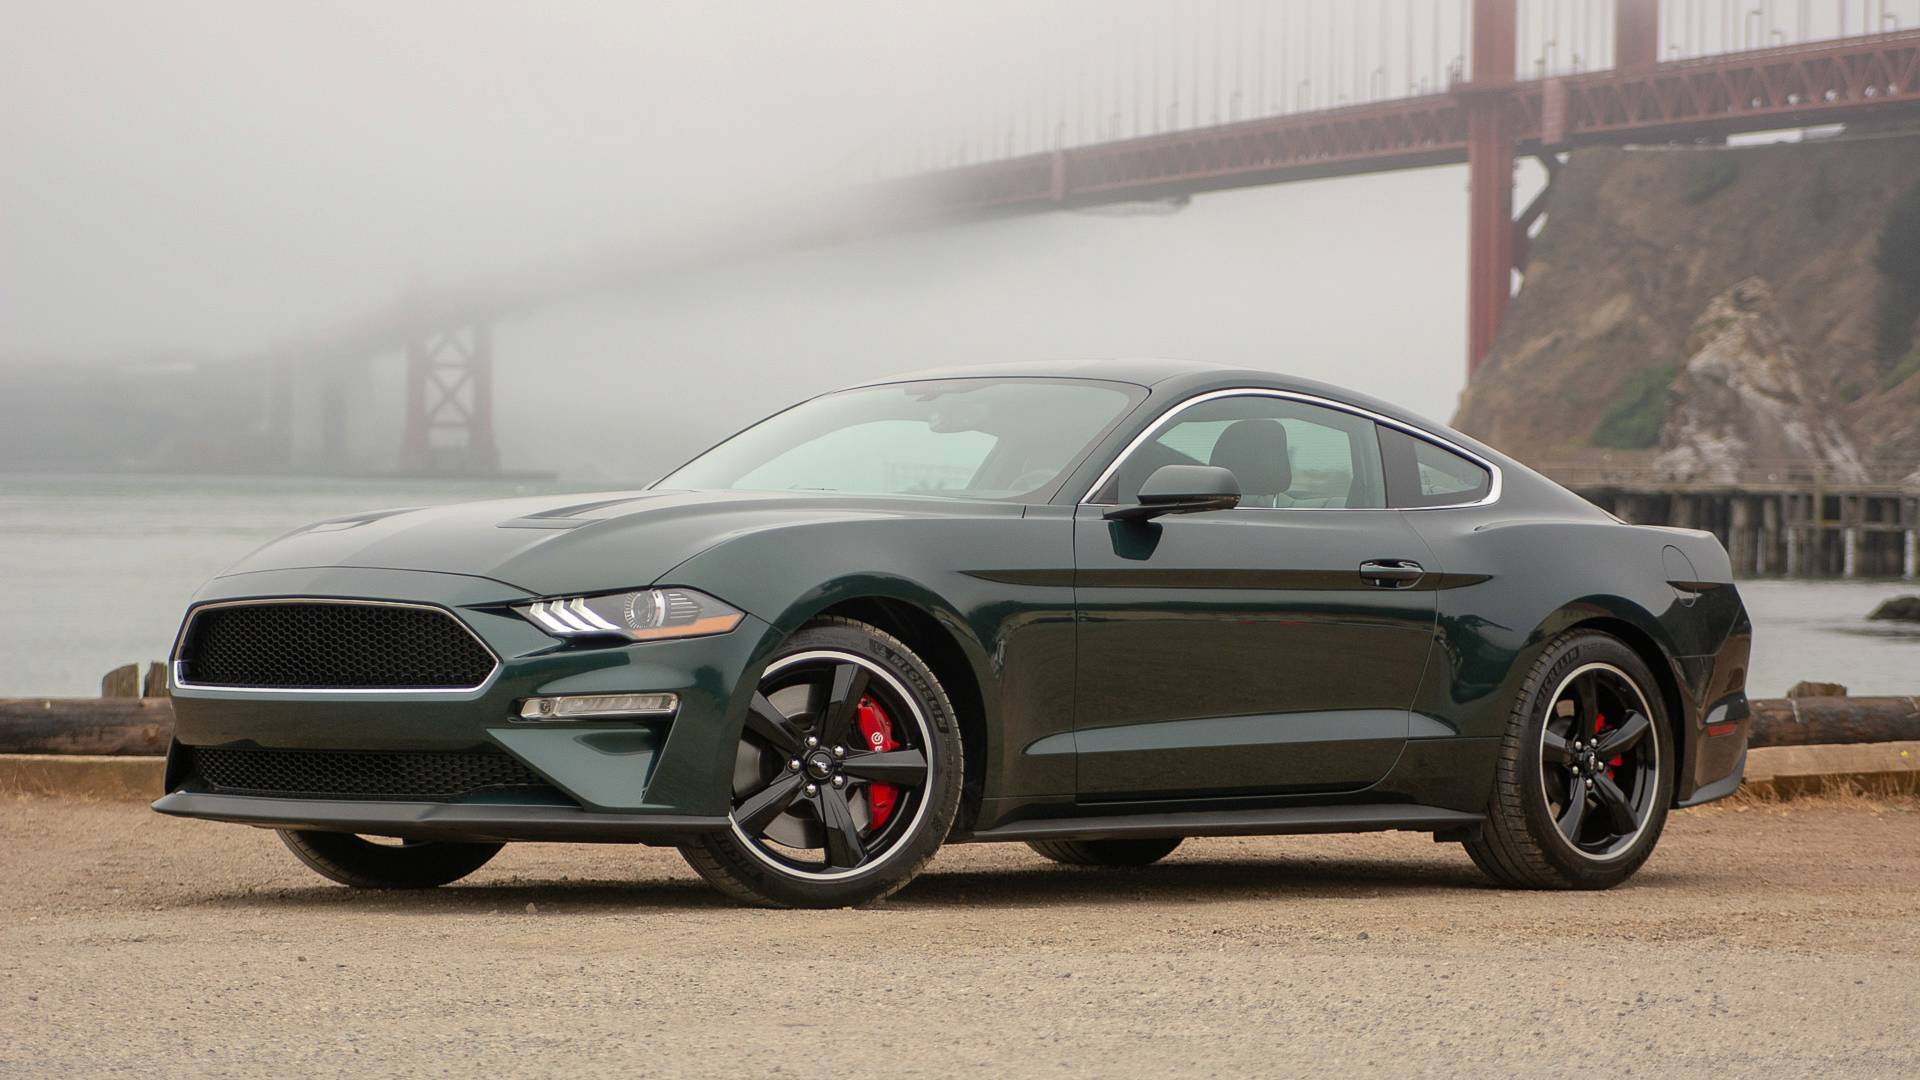 2019 ford mustang sees price increase while chevy cuts camaros